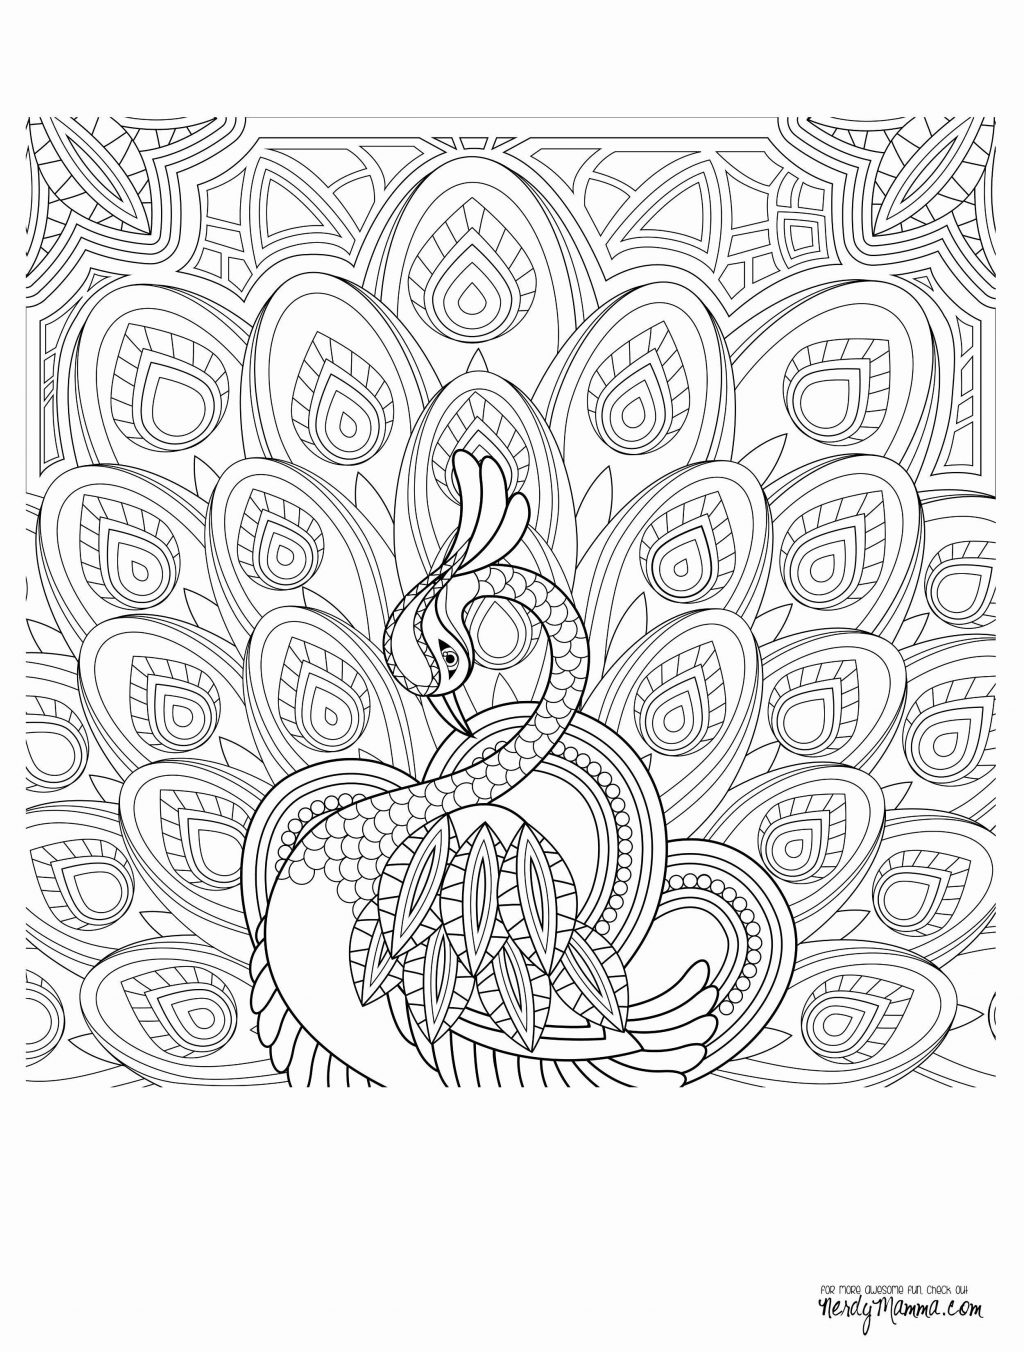 It is a graphic of Printable Complex Coloring Pages for christmas